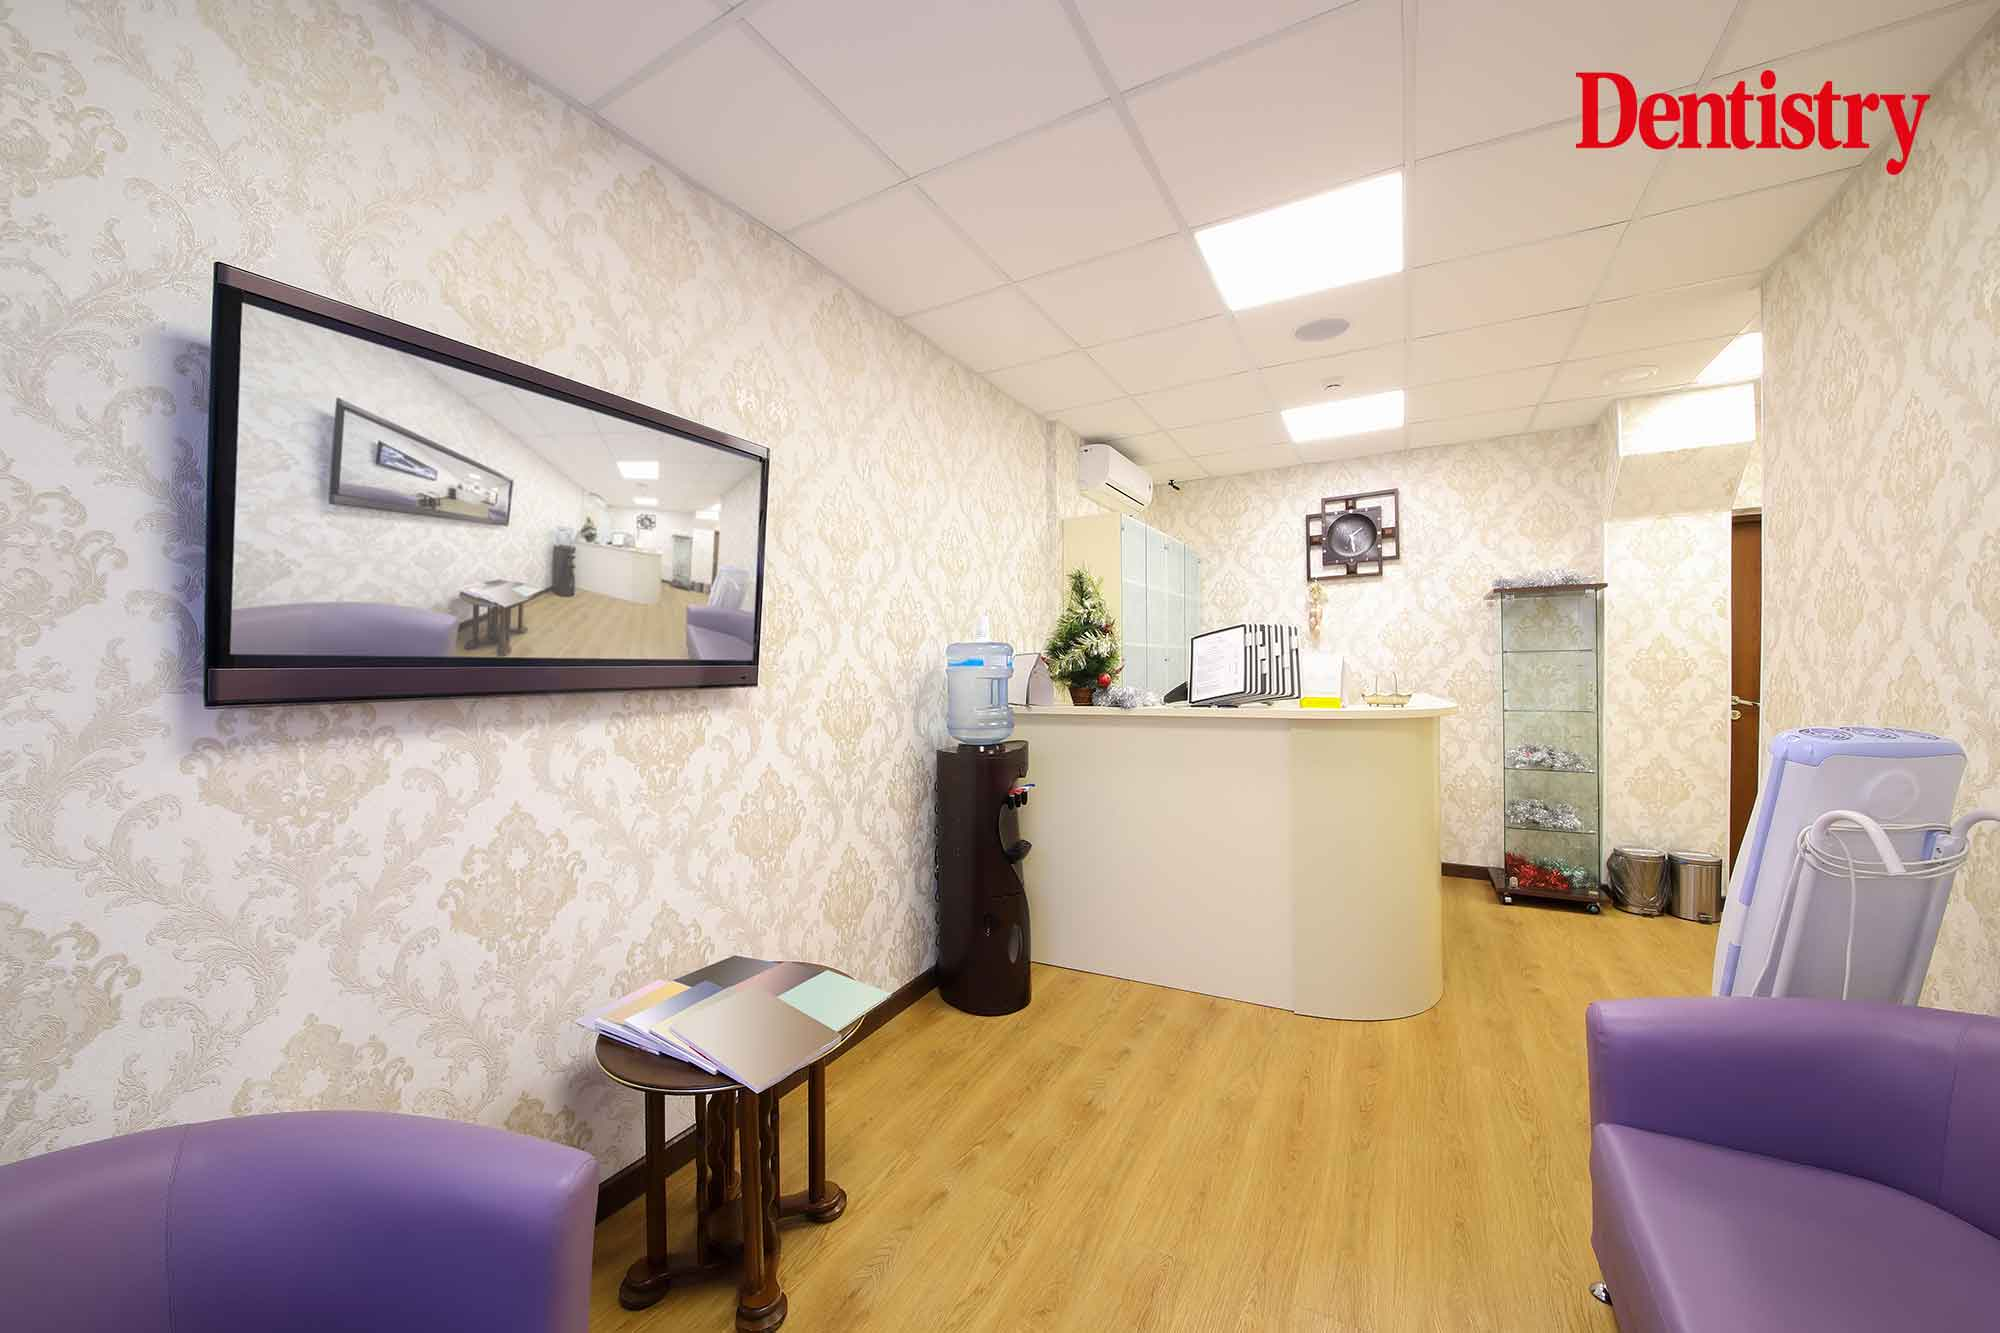 digital signage in a dental practice